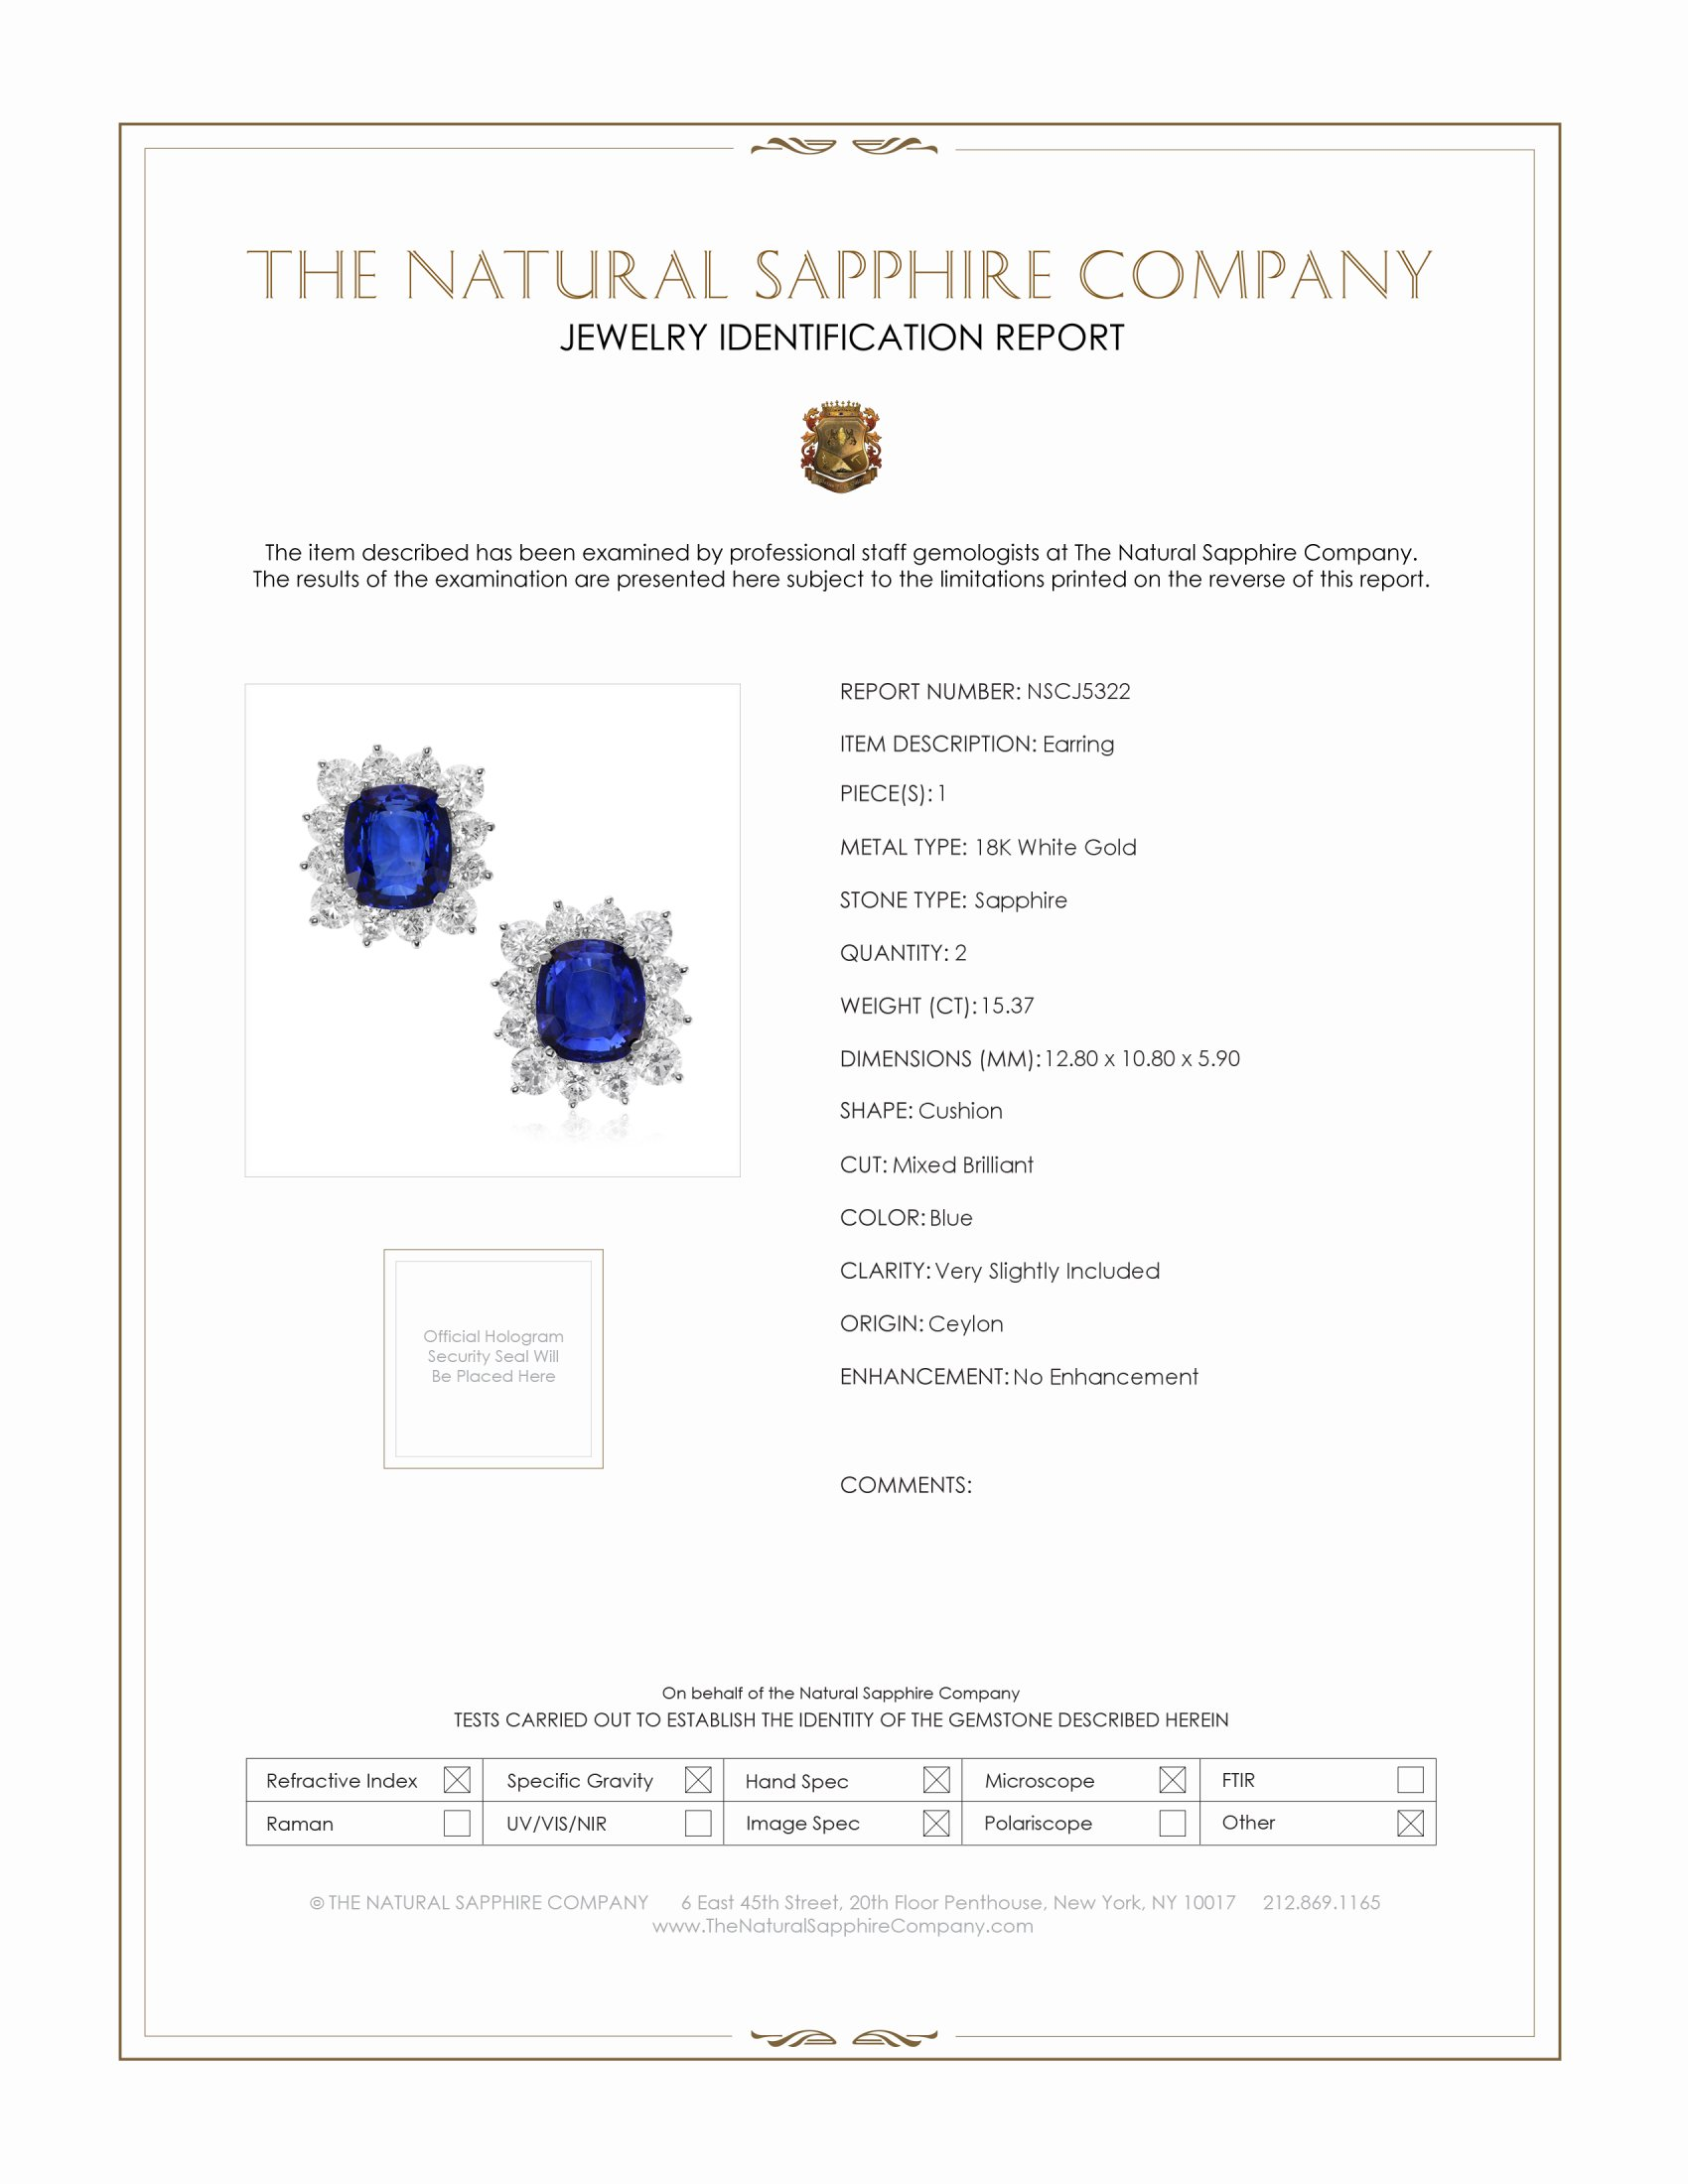 15.37ct Blue Sapphire Earring Certification